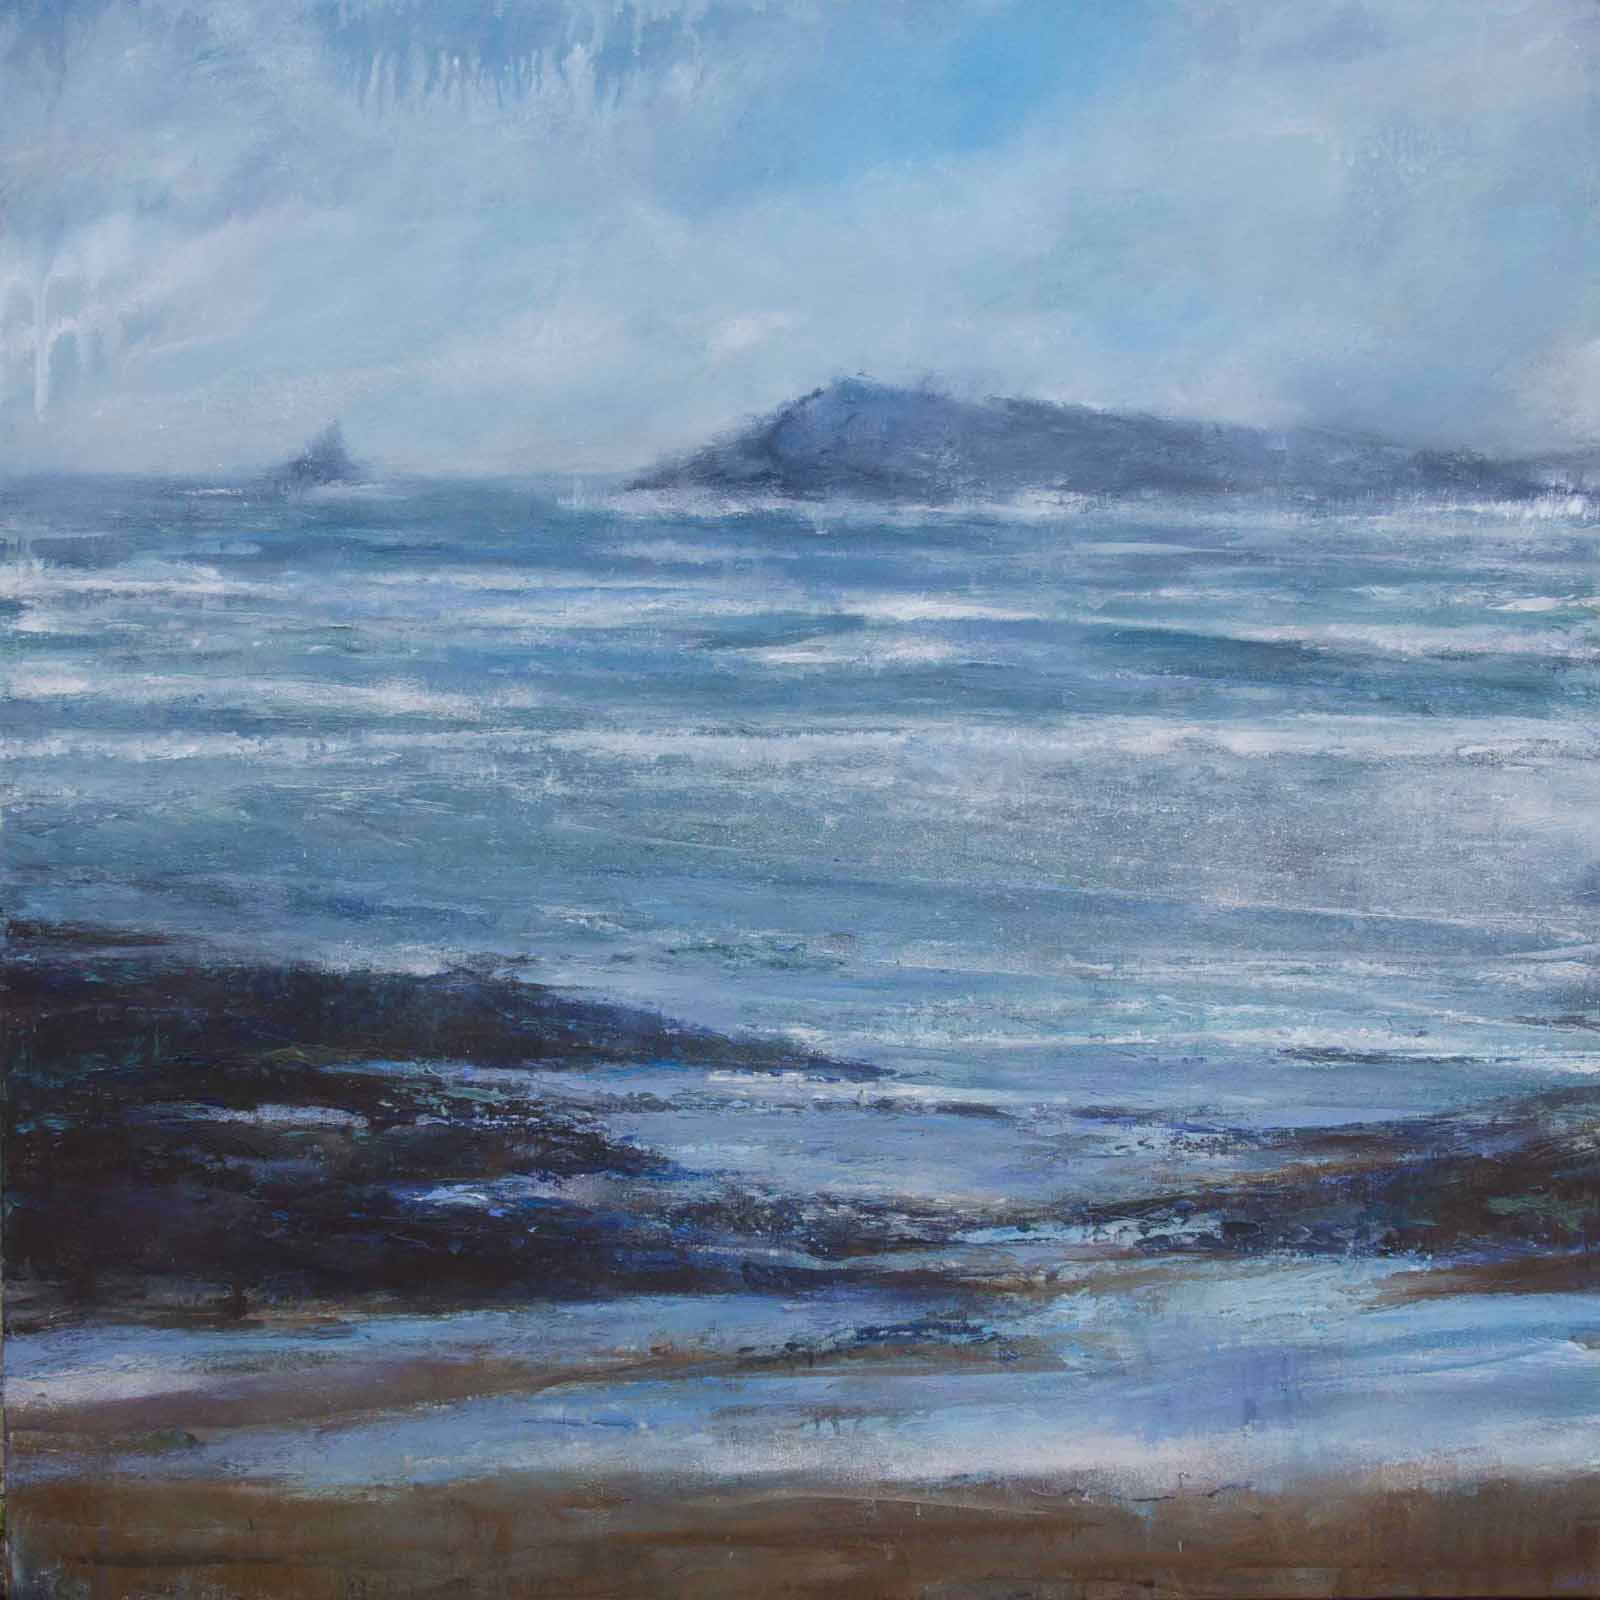 Wind and Surf, Polzeath